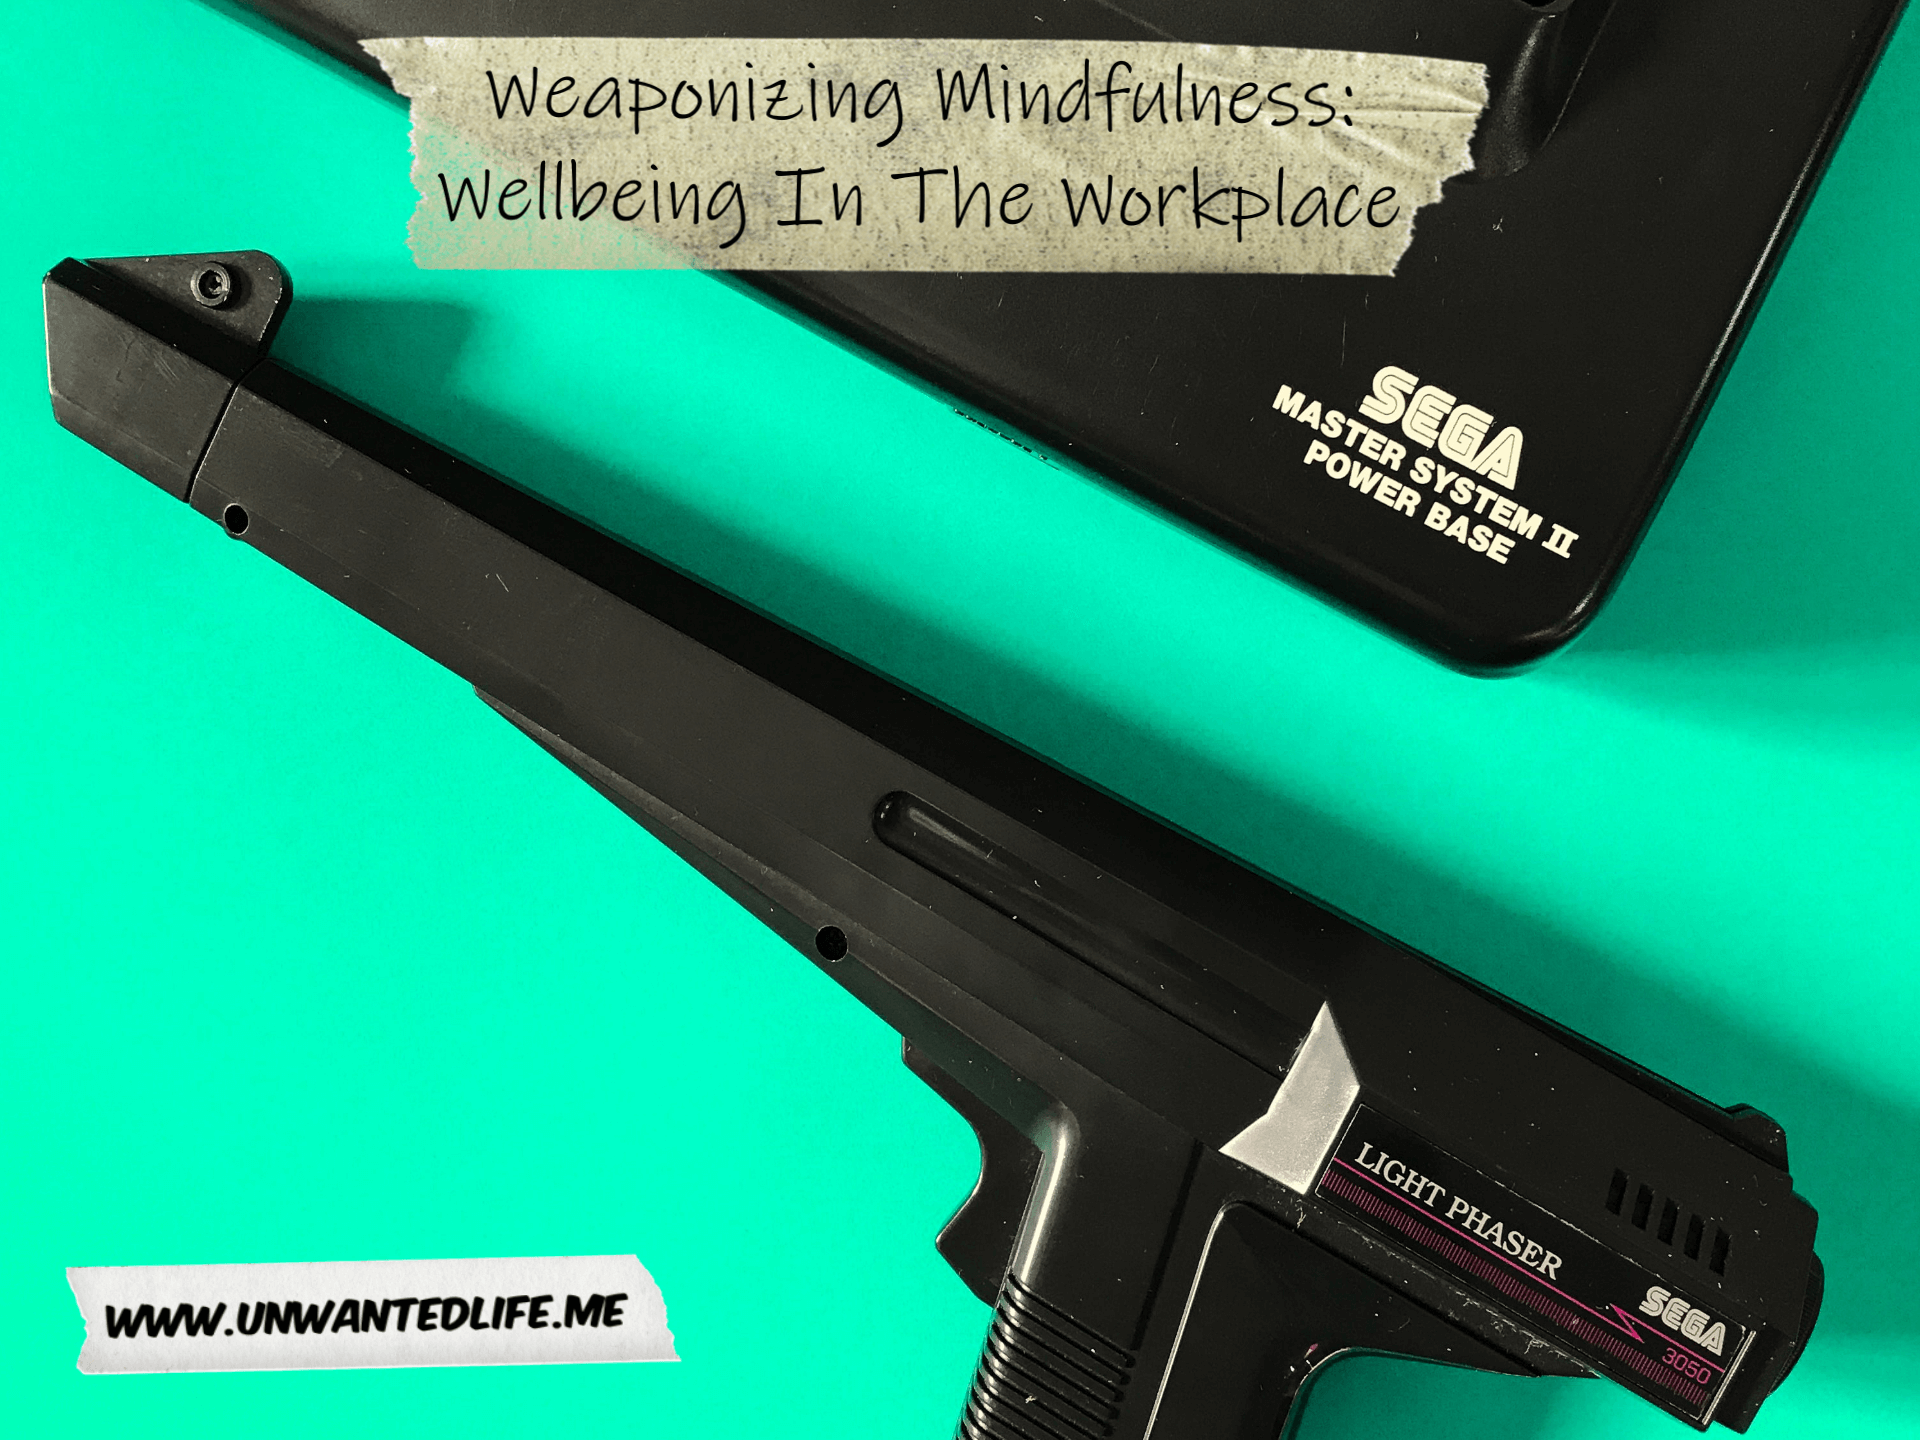 A photo of a Sage Master System 2 and its laser gun to represent the topic of the article - Weaponizing Mindfulness: Wellbeing In The Workplace